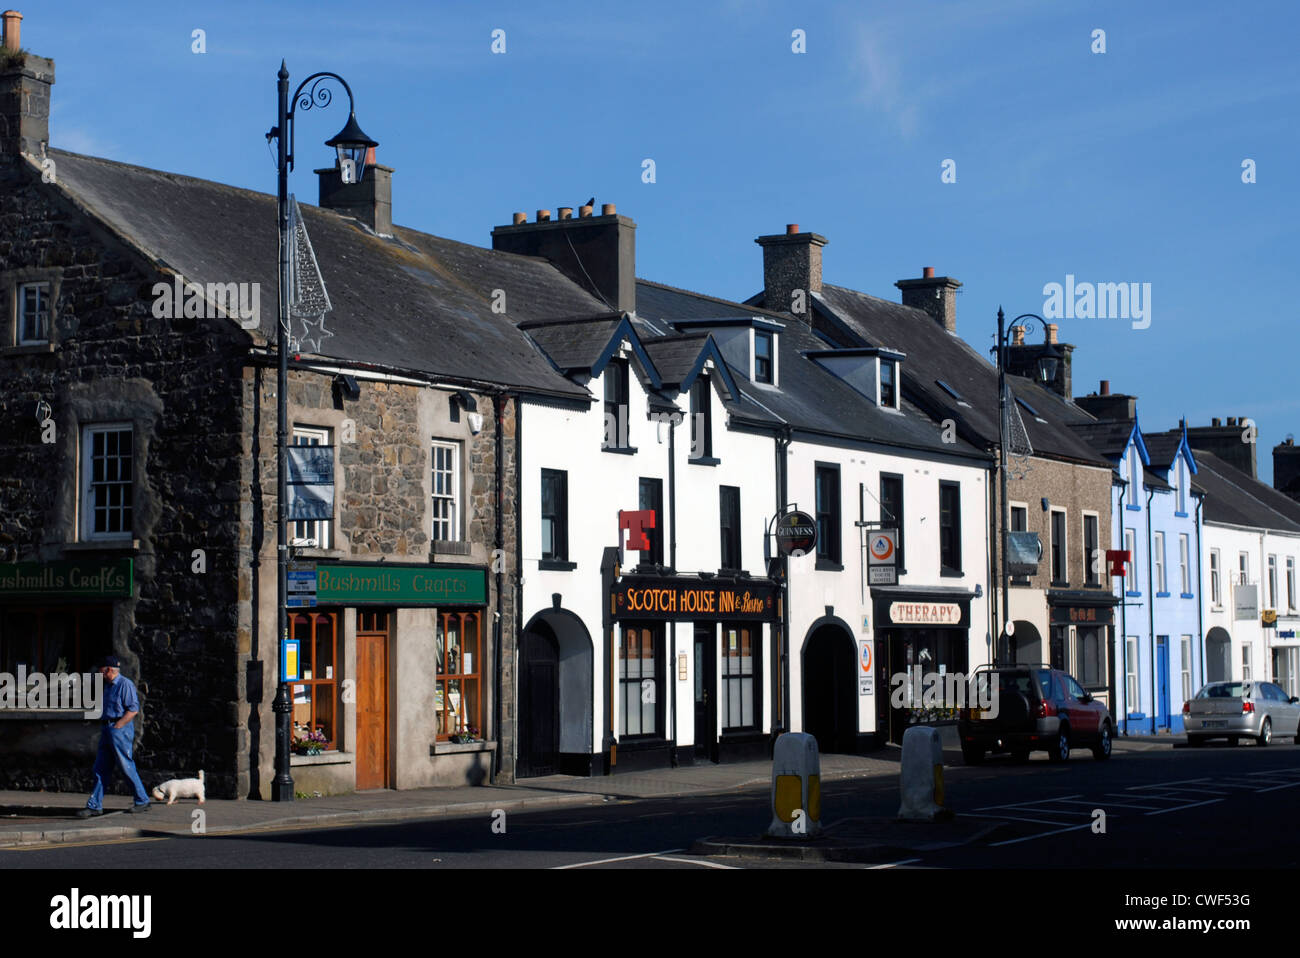 Main Street in Bushmills, Coastal Road, County Antrim, Ulster, North Ireland, UK, Europe. - Stock Image